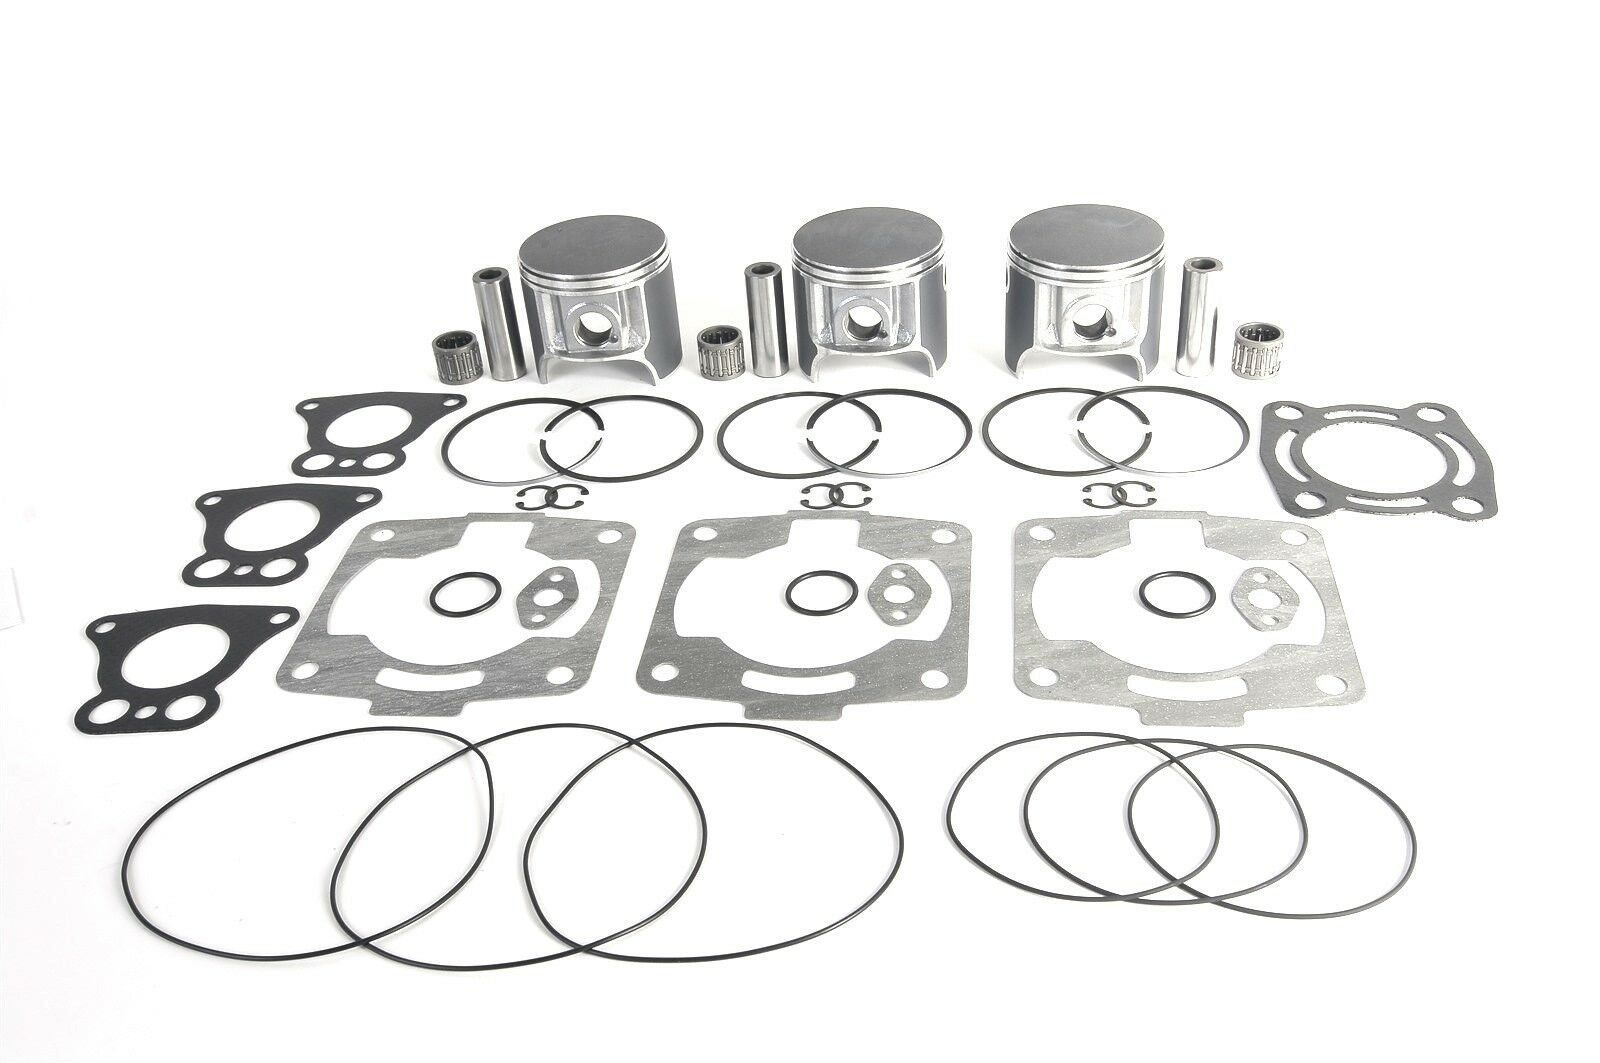 Polaris Top End Gasket Piston Kit 1050 1996 1997 98 1999